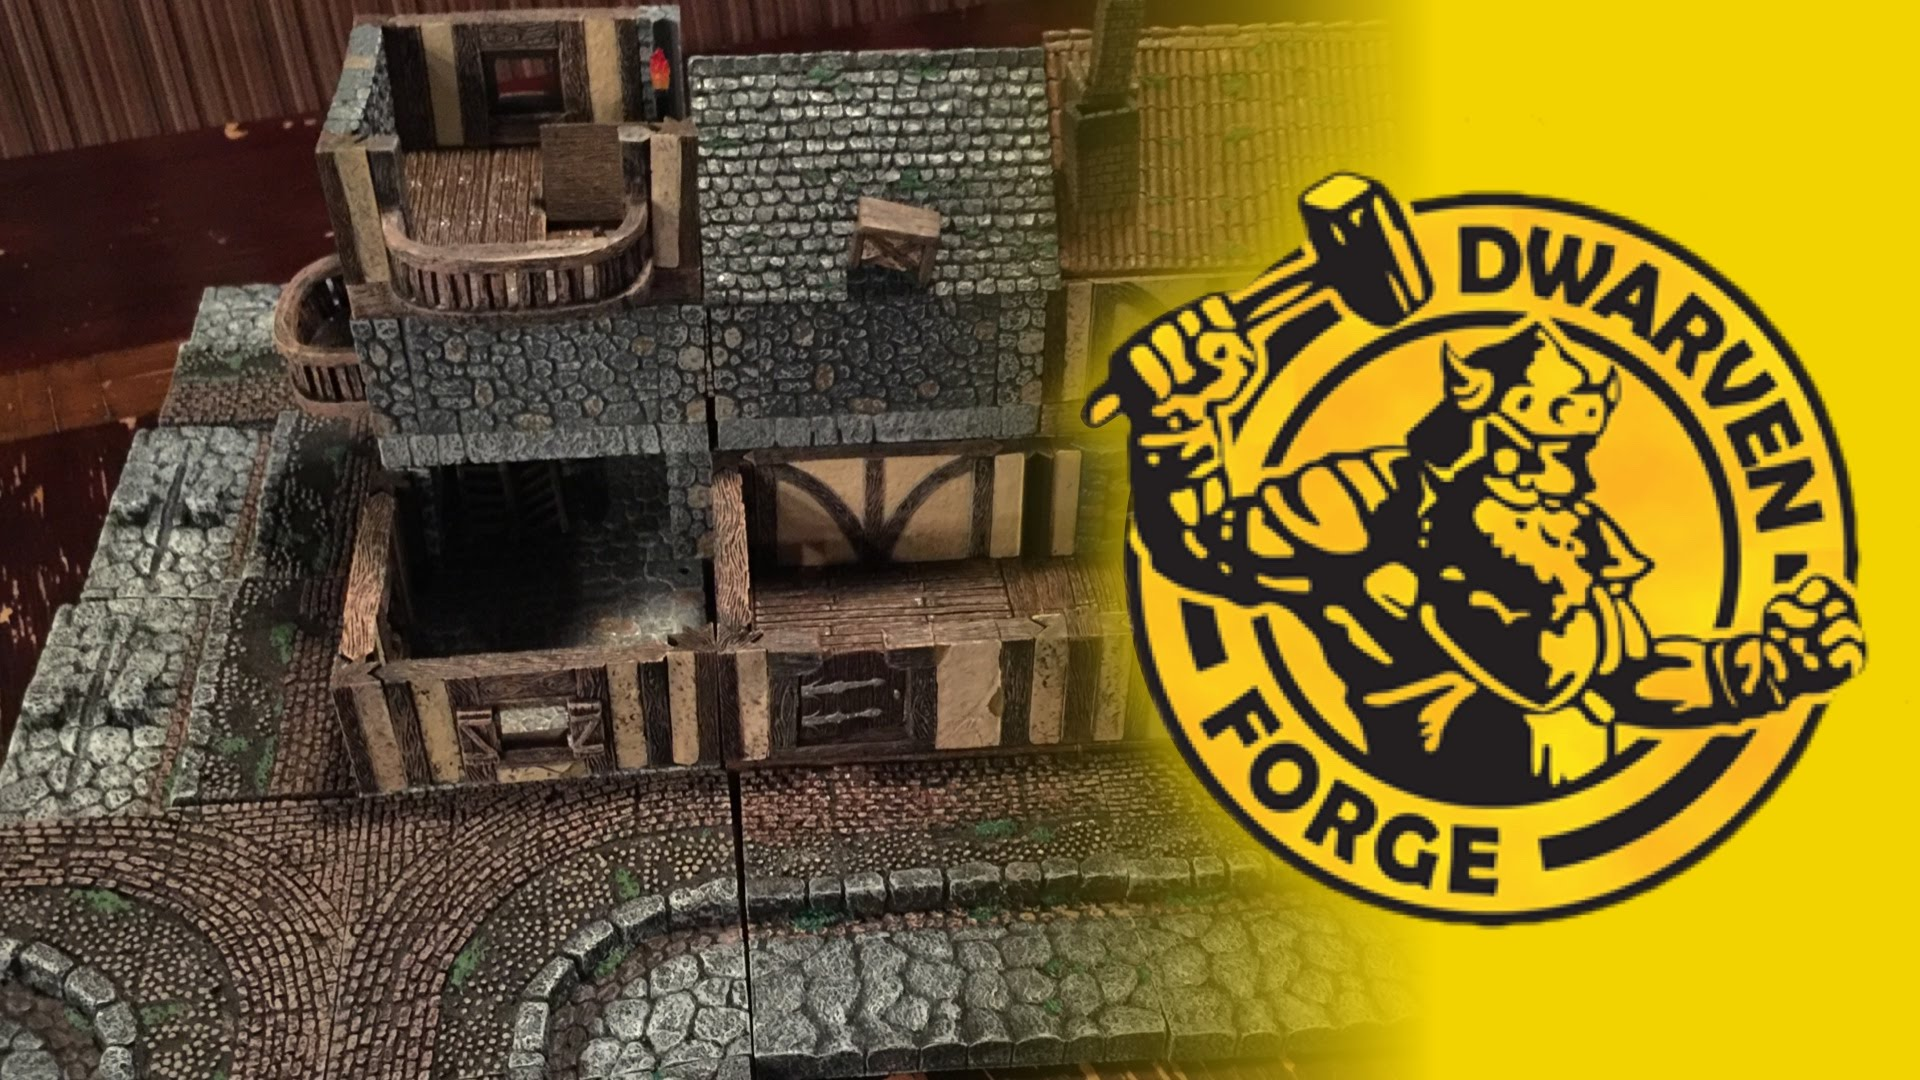 Dwarven Forge Reactions